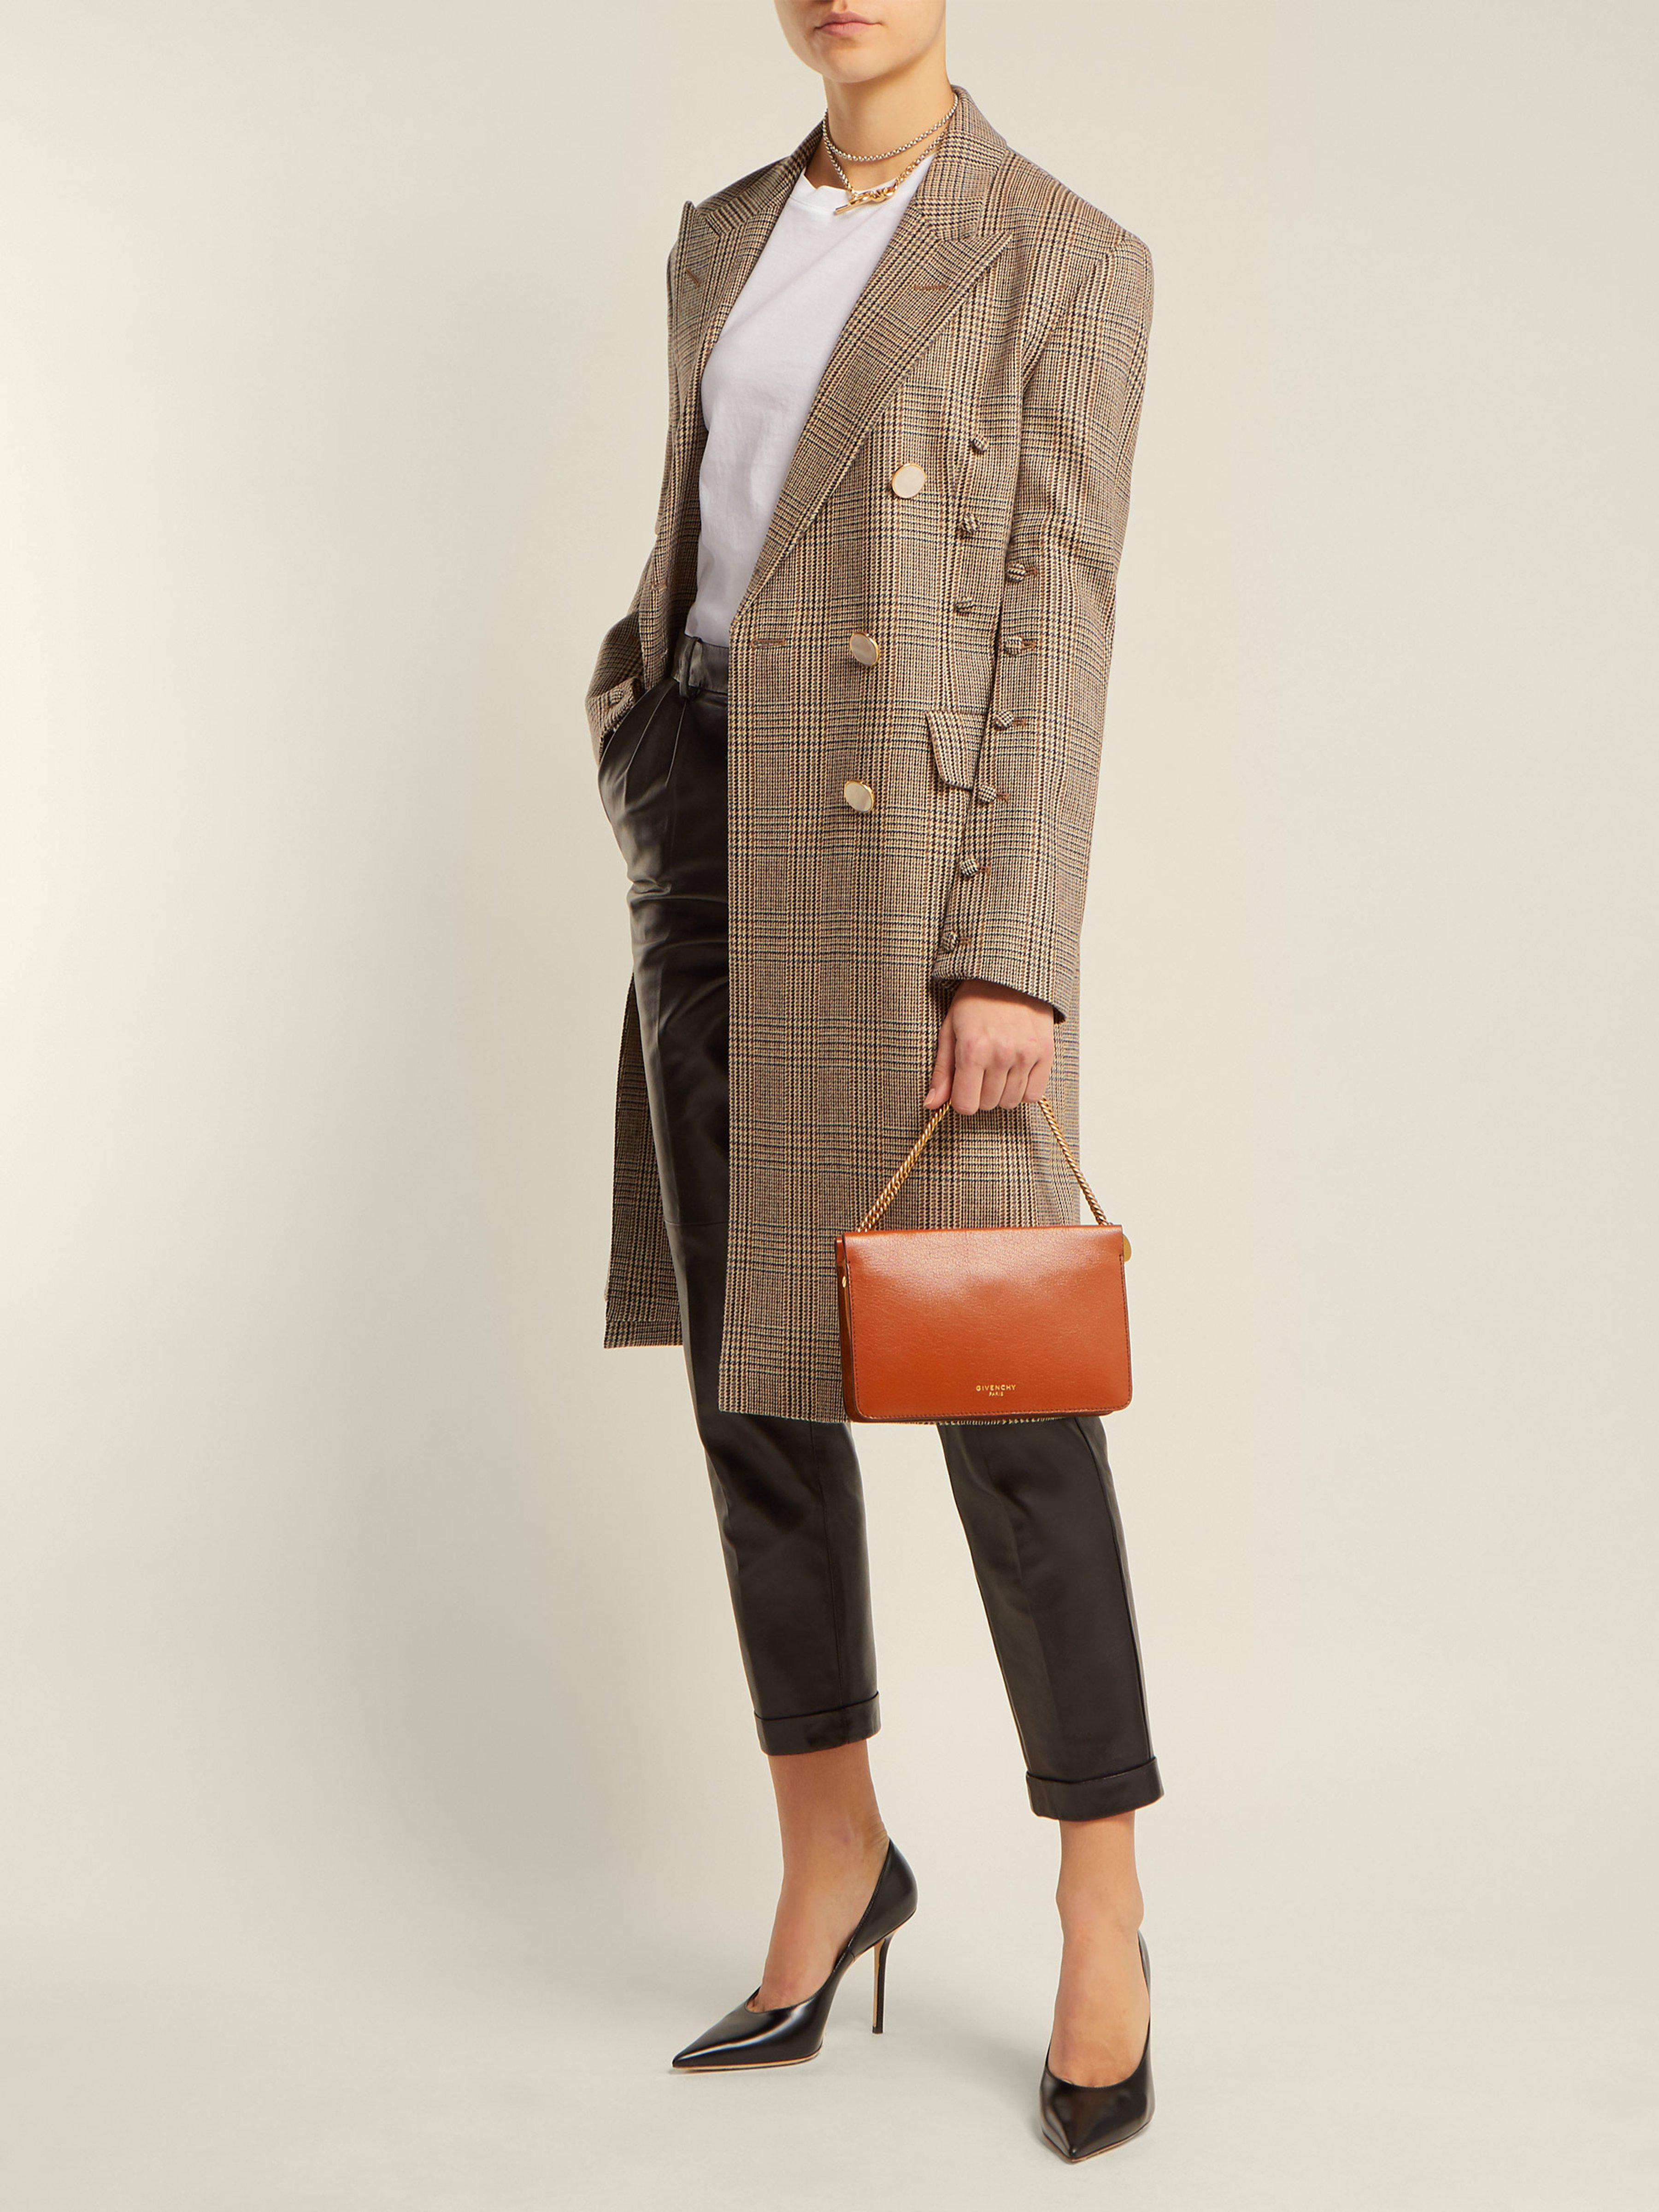 71daac10bb Givenchy Cross3 Leather Cross Body Bag in Brown - Lyst